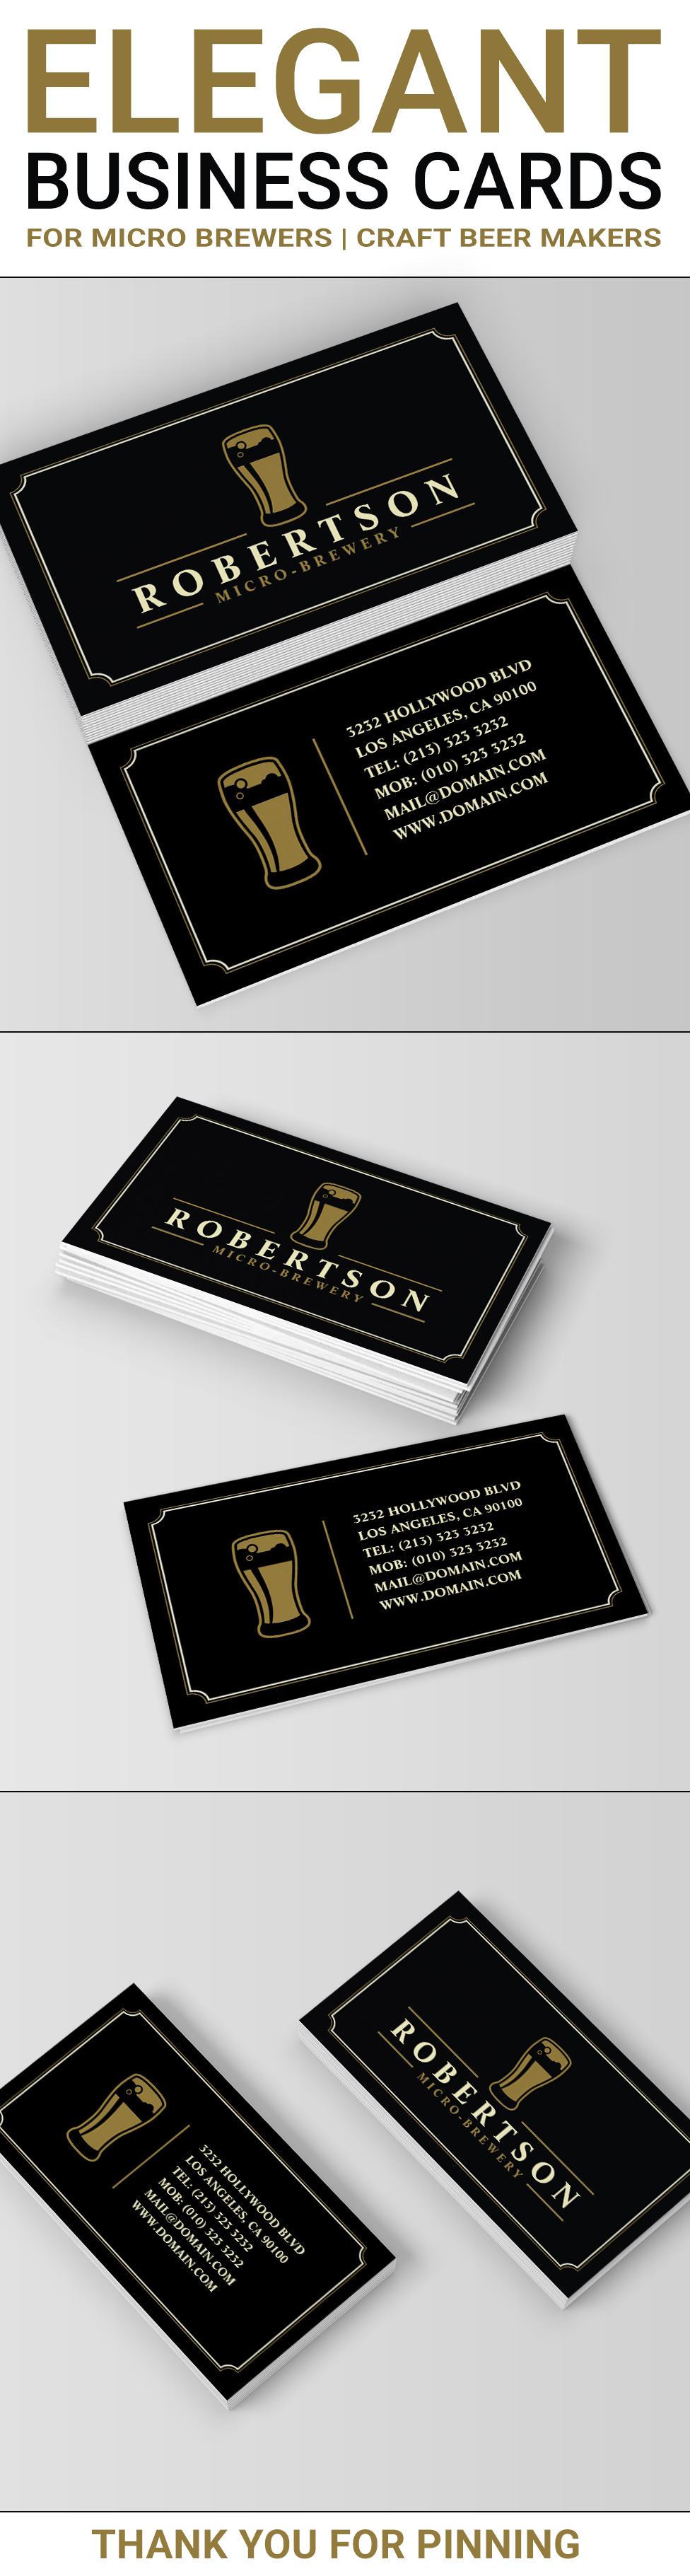 Elegant Micro Brewery Craft Beer Business Card | Pinterest | Card ...